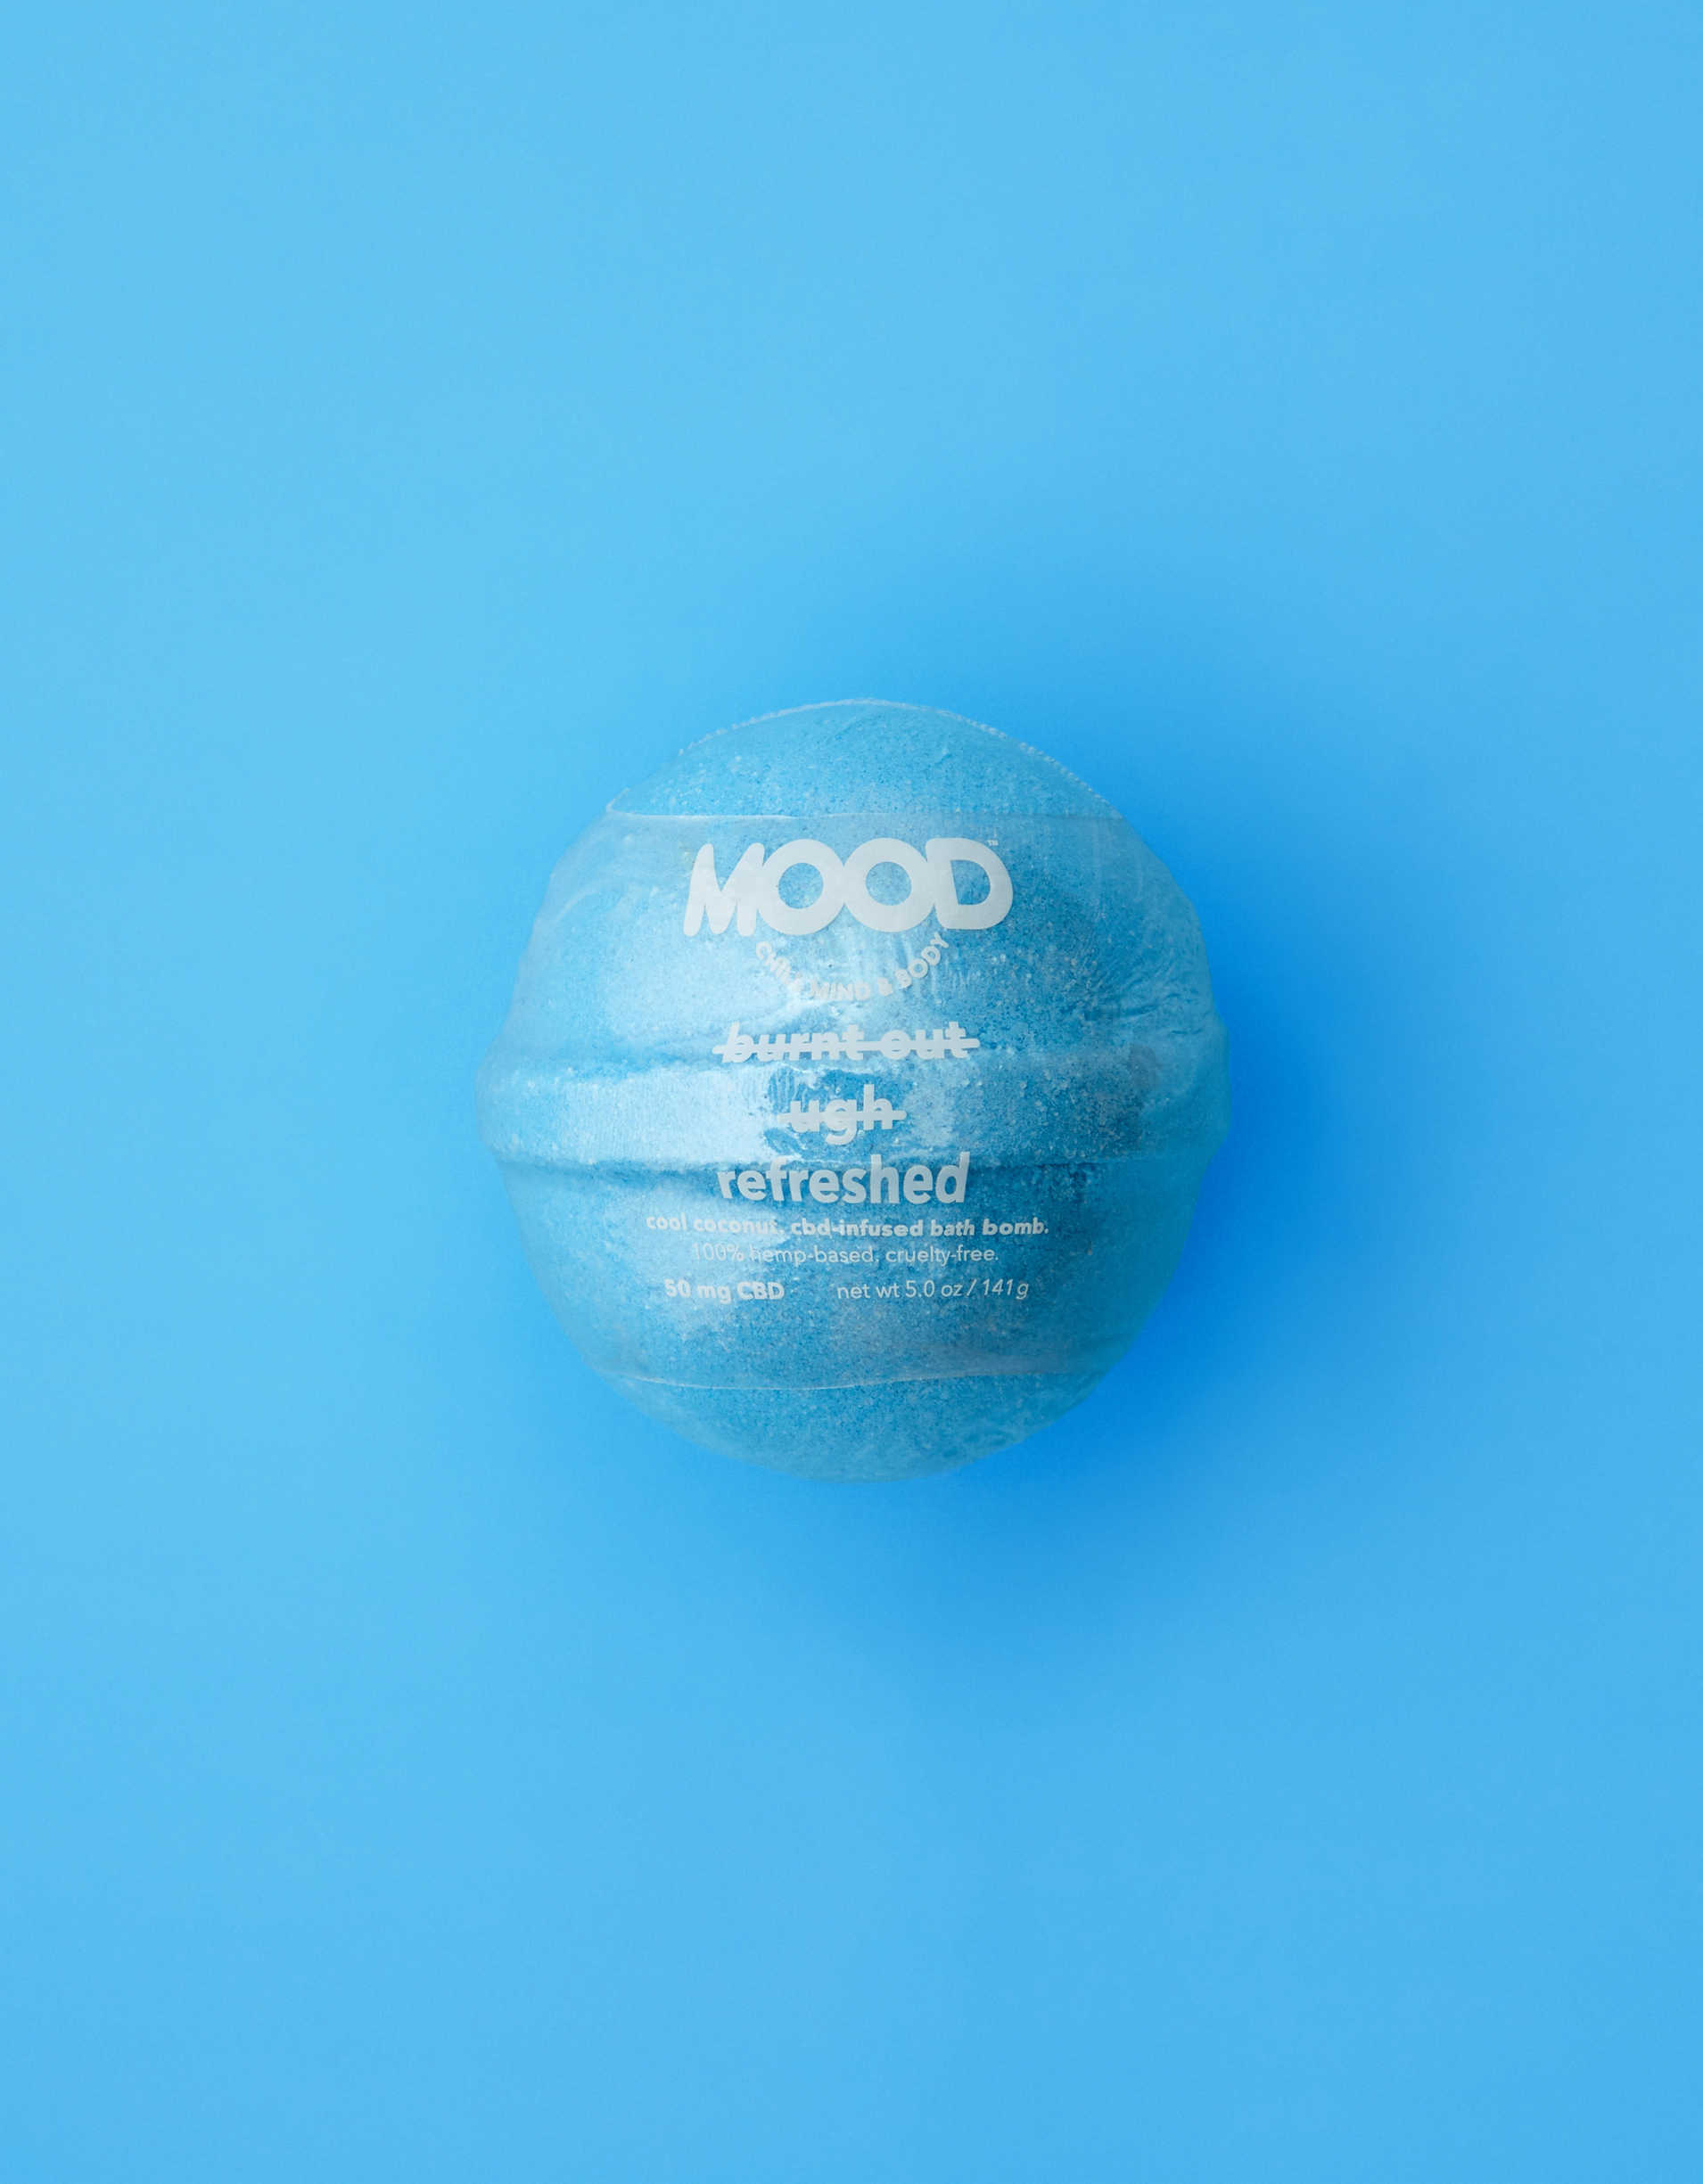 MOOD Refreshed CBD-Infused Bath Bomb